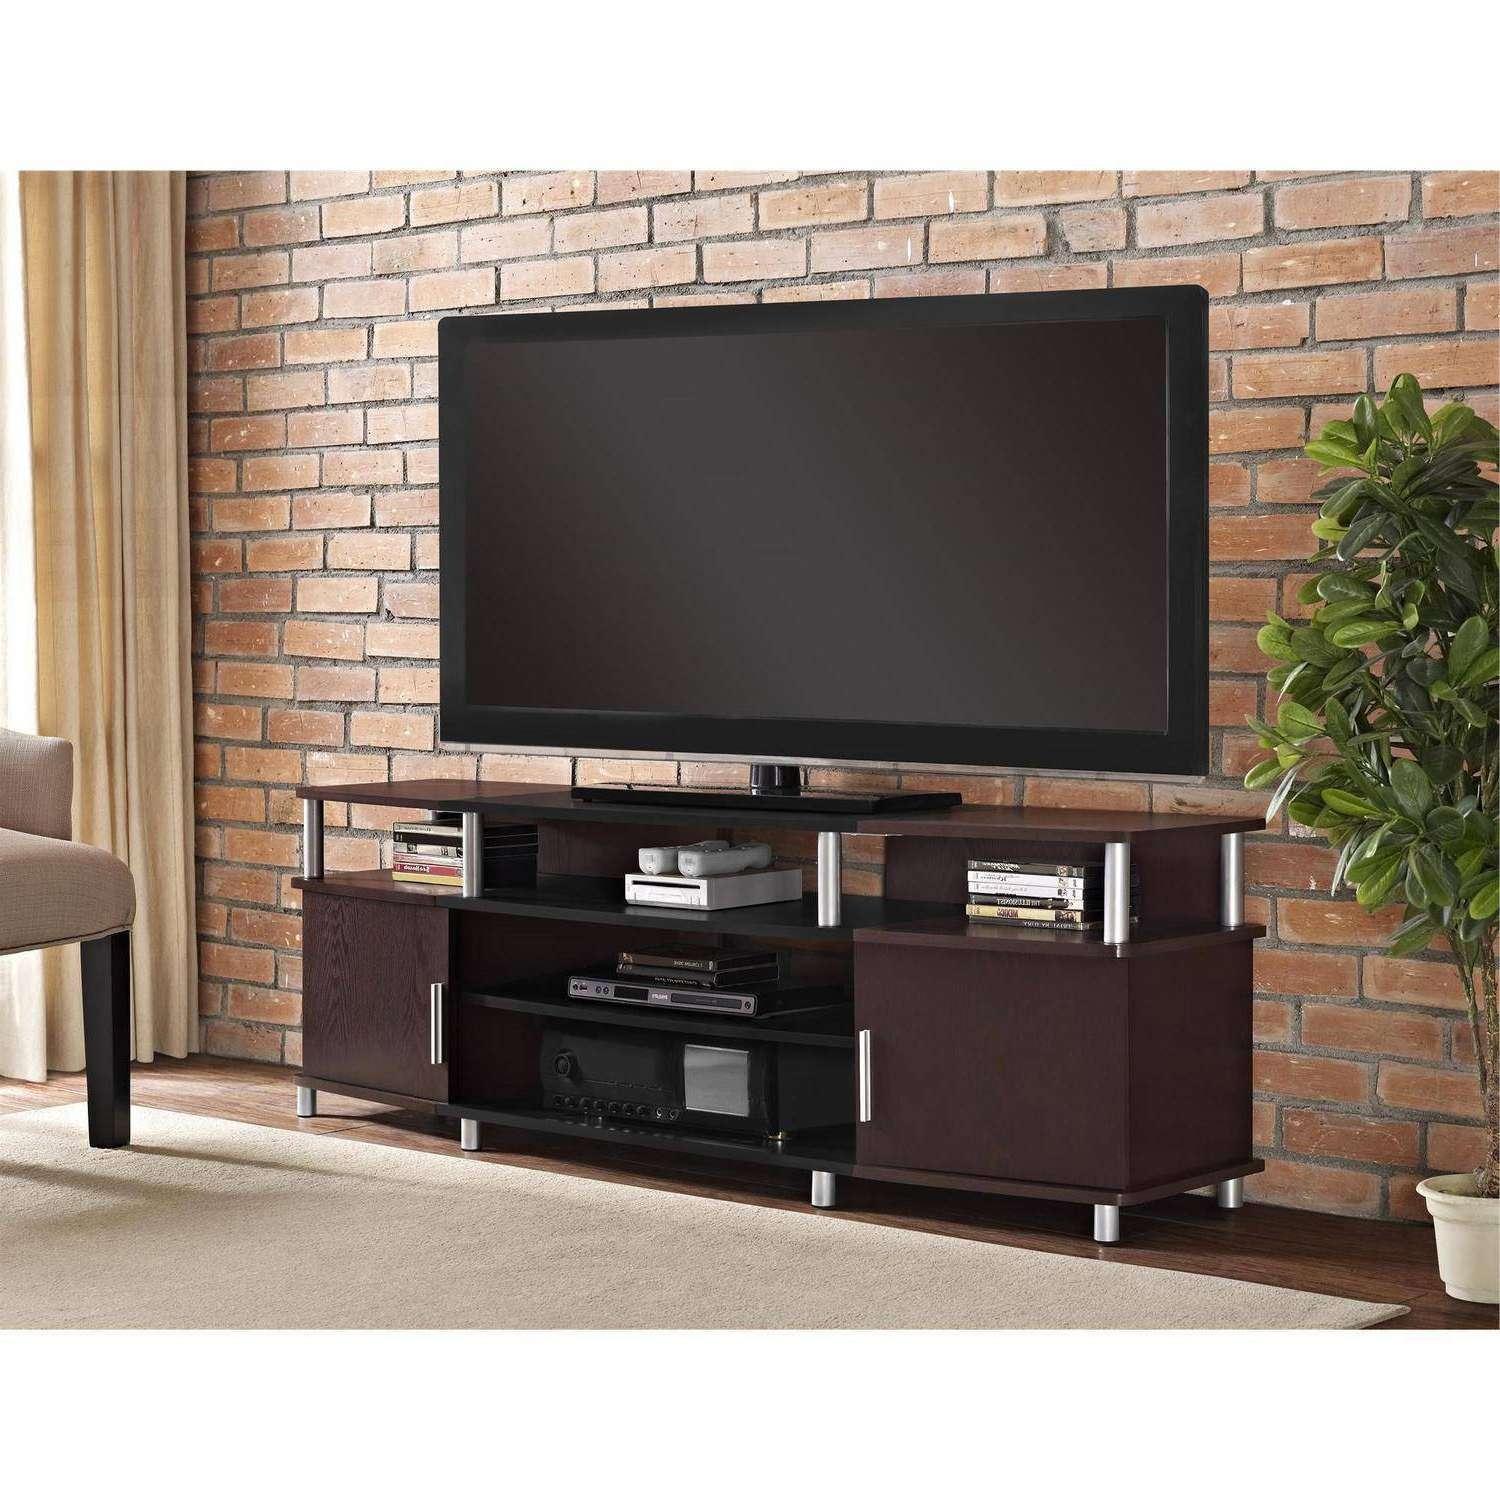 Tv Stands & Entertainment Centers – Walmart Within Wooden Tv Stands For Flat Screens (View 15 of 15)